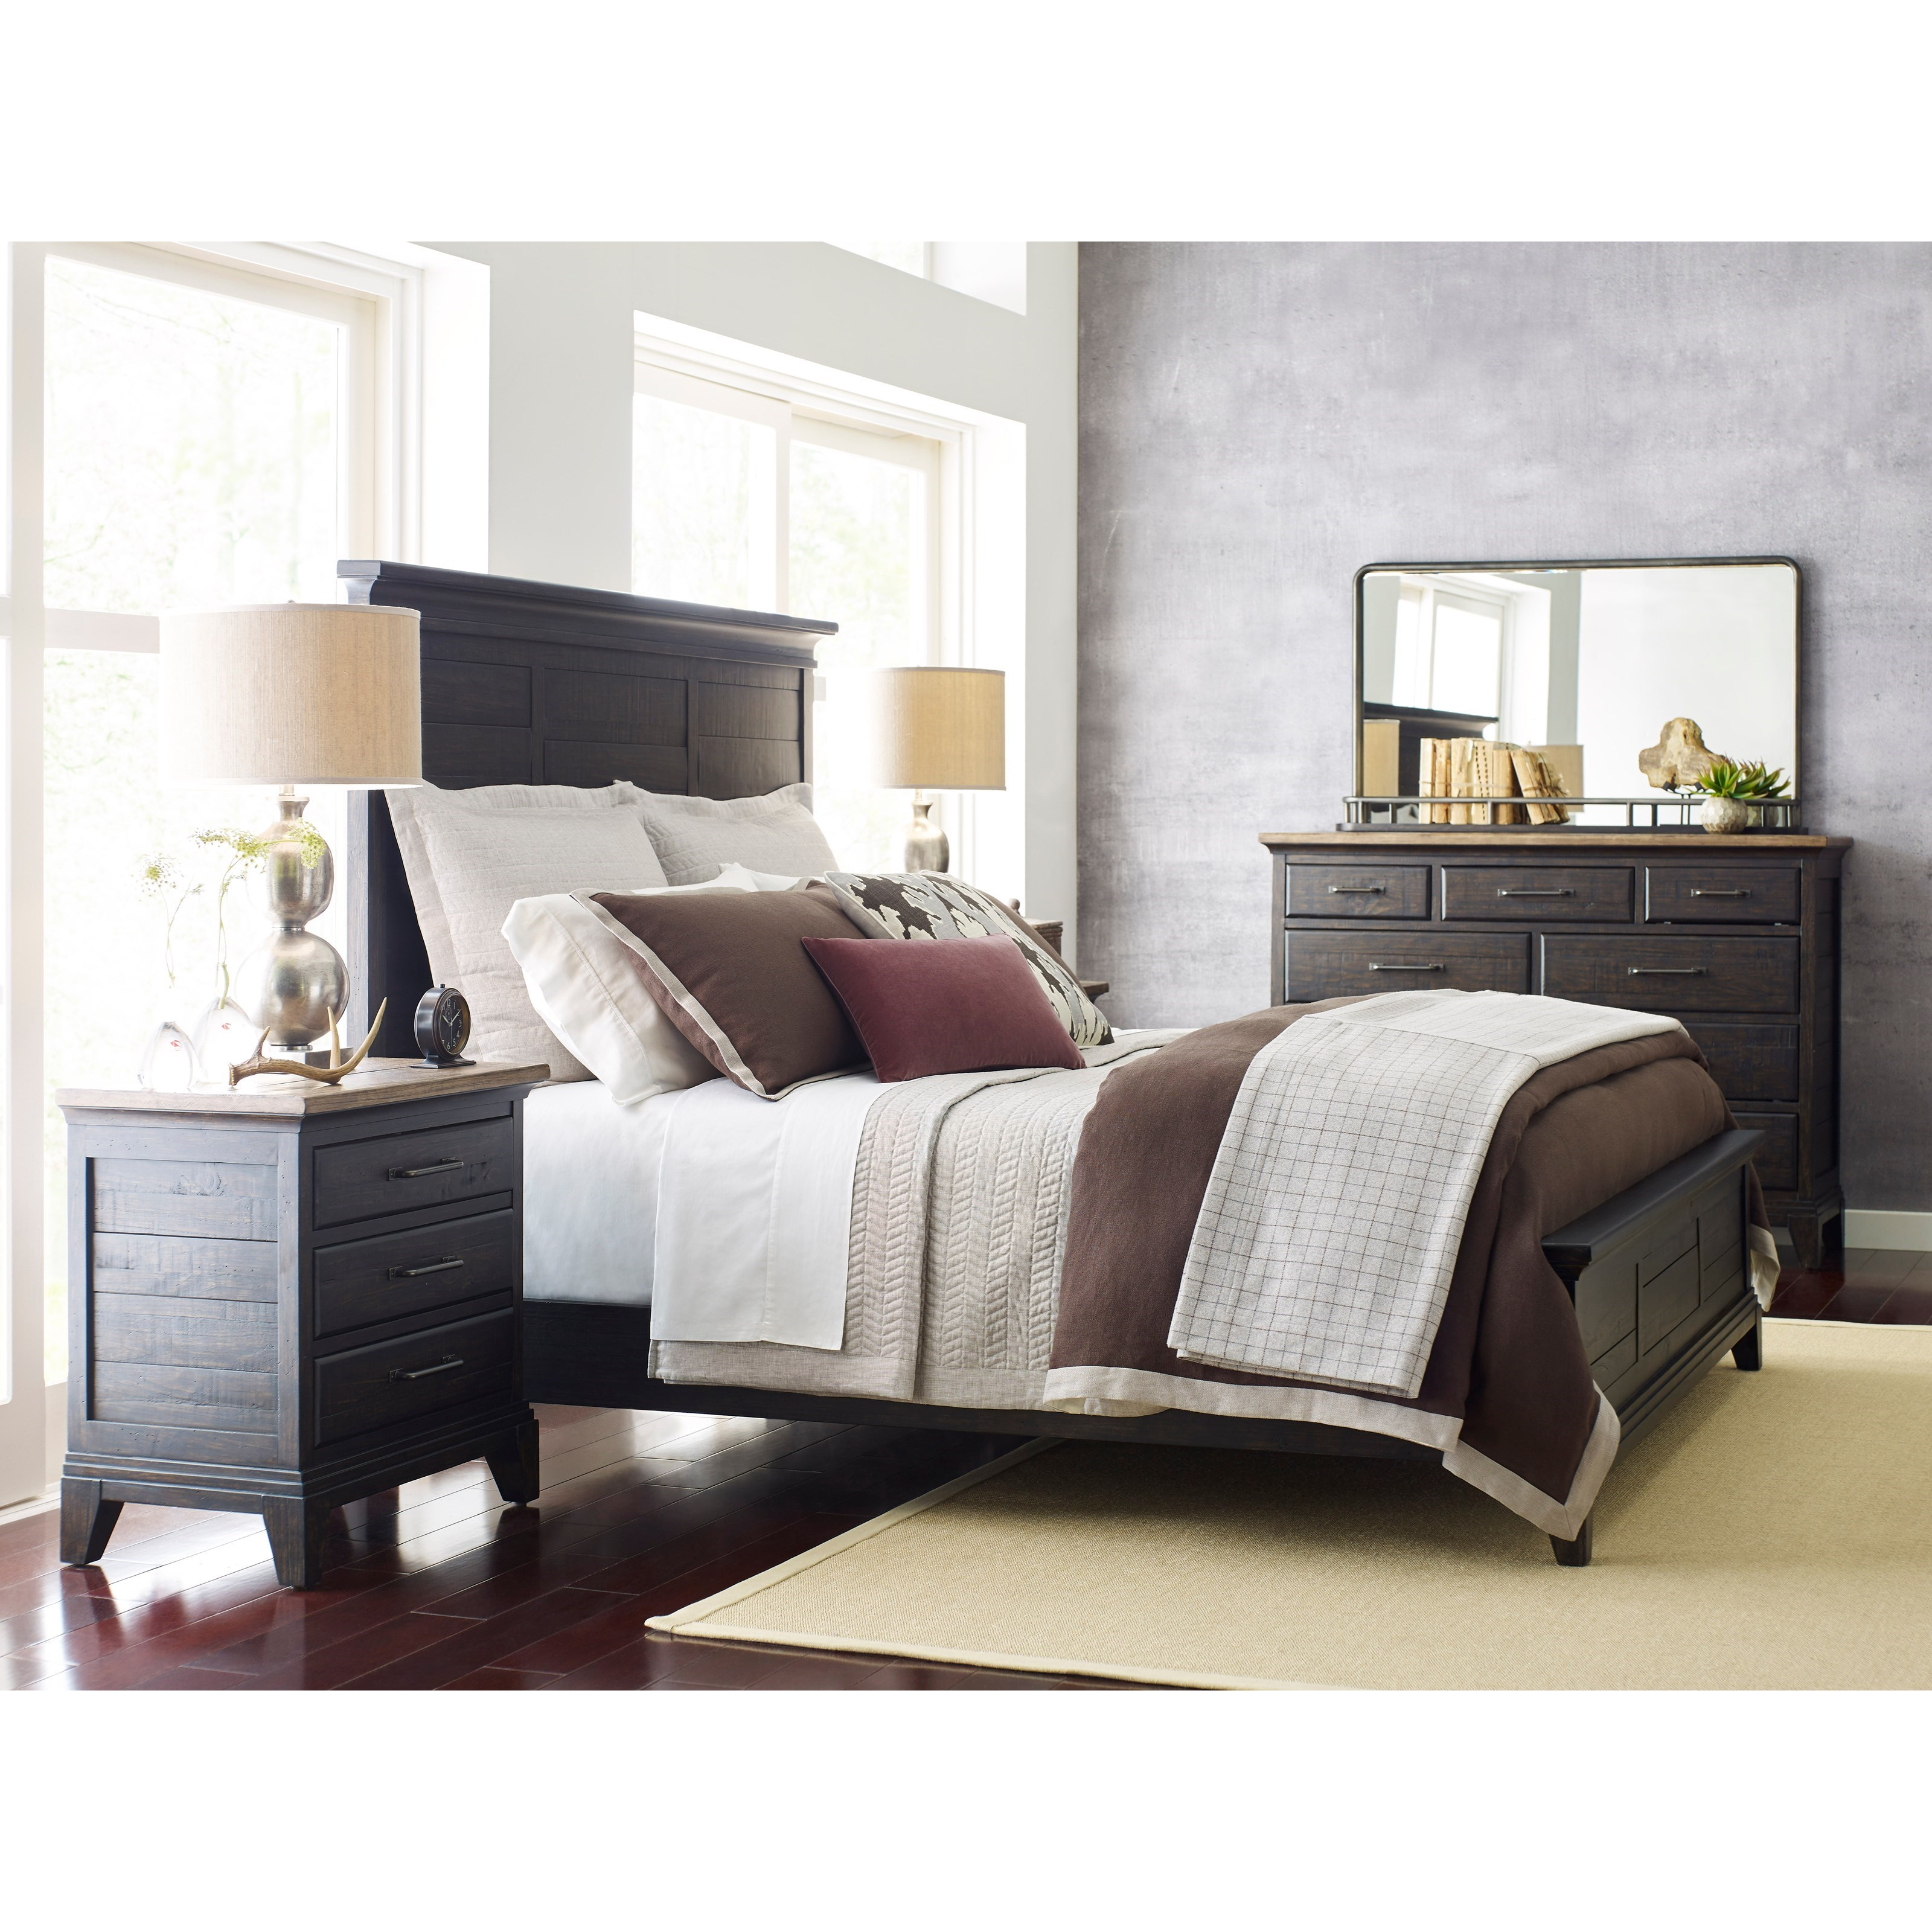 Plank Road Queen Bedroom Group by Kincaid Furniture at Northeast Factory Direct